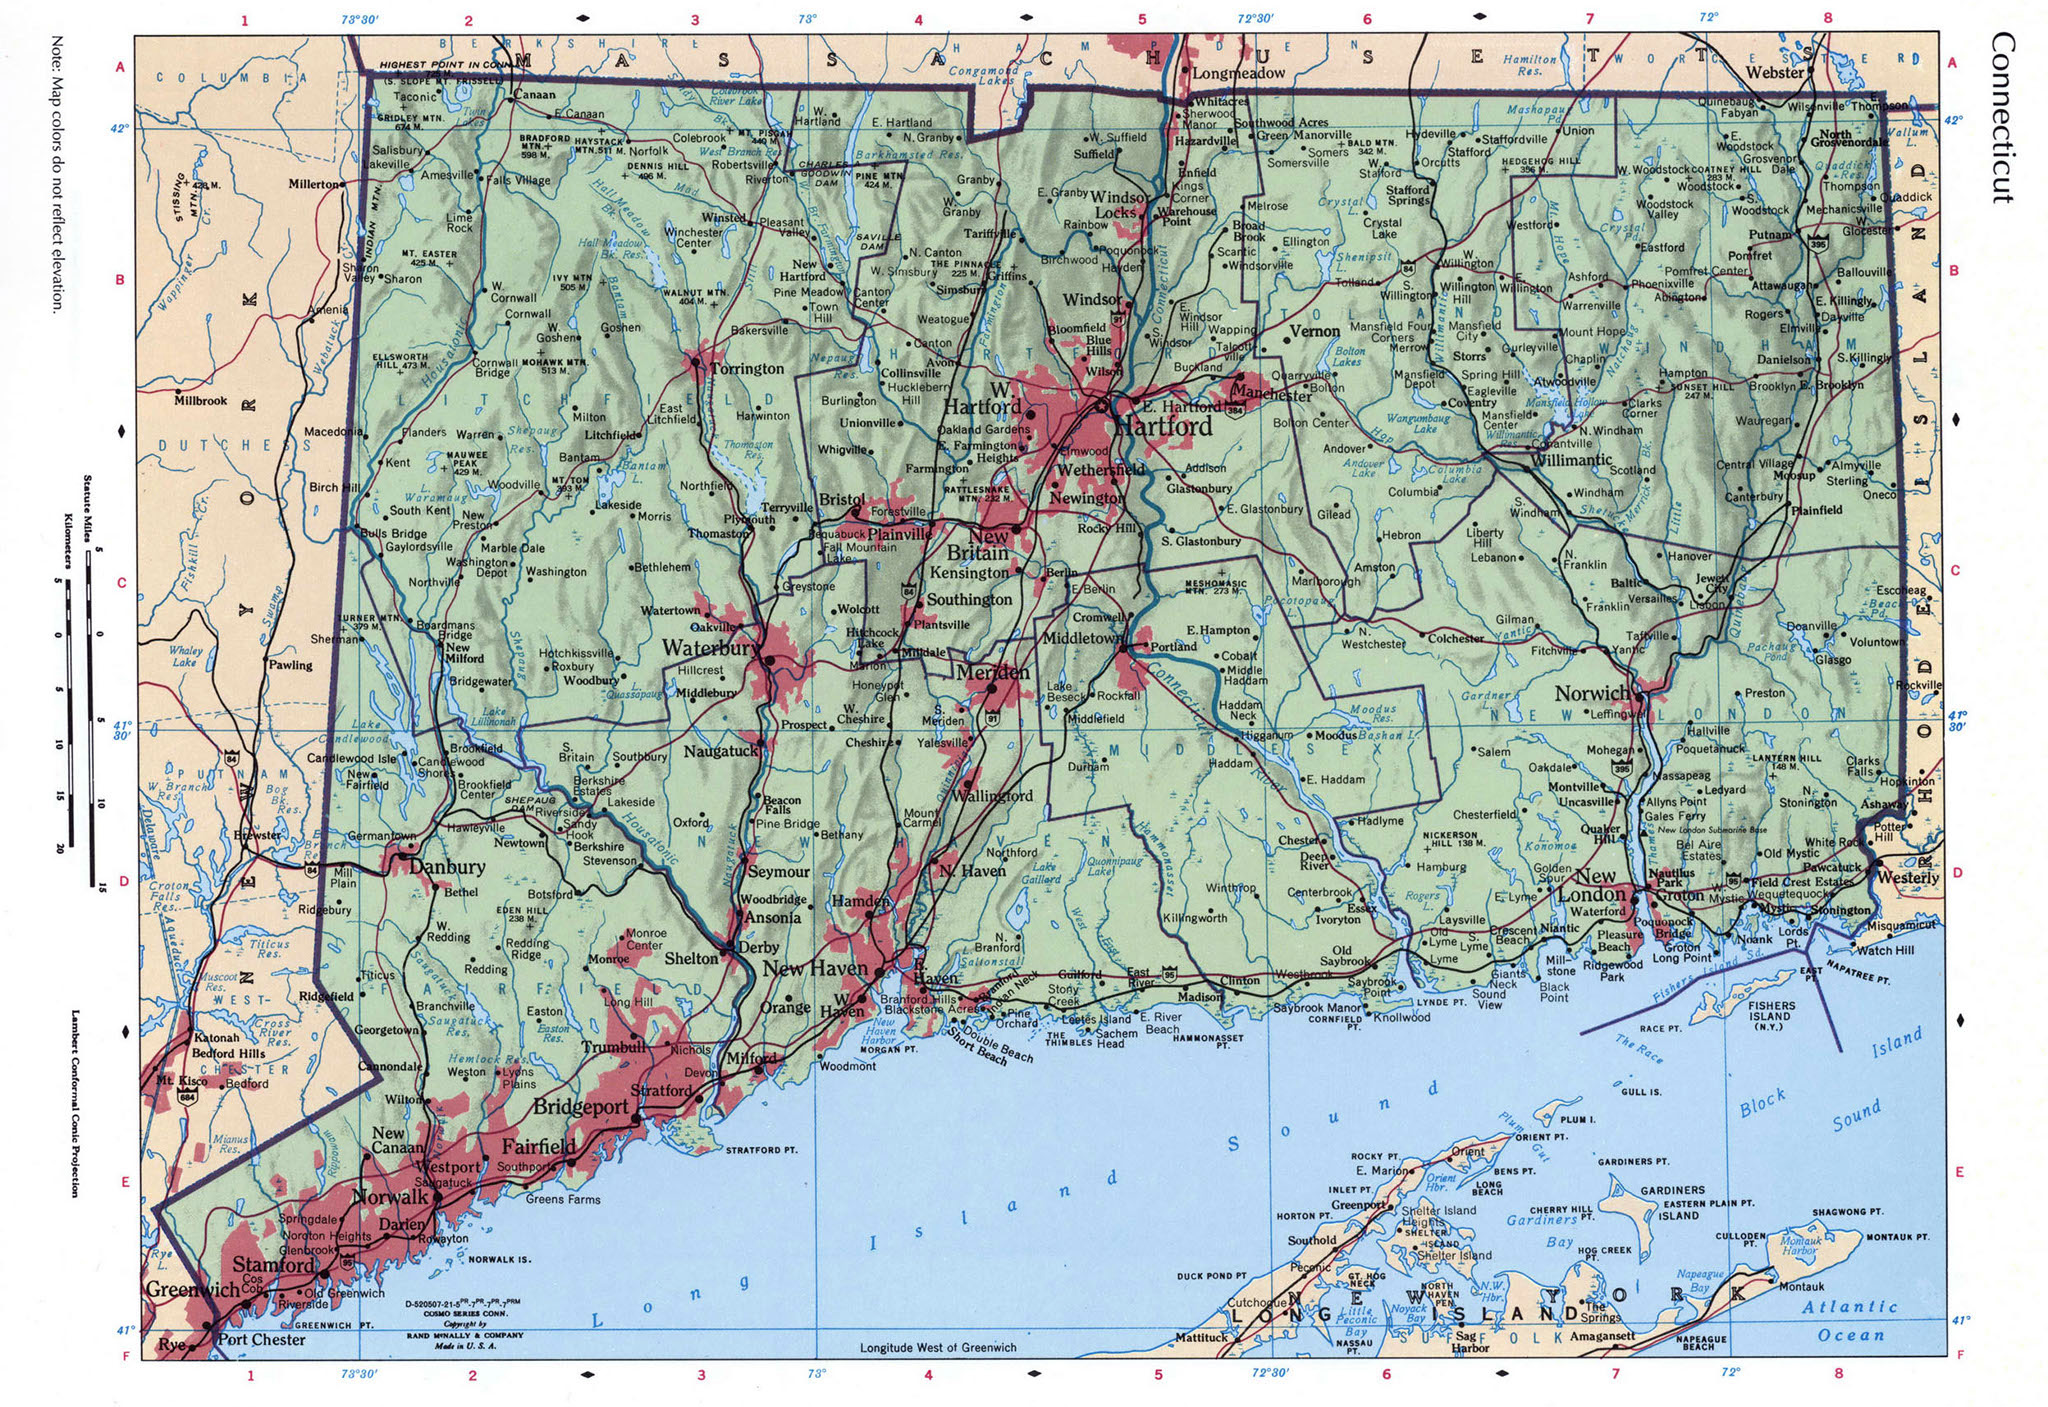 Large detailed roads and highways map of Connecticut state with